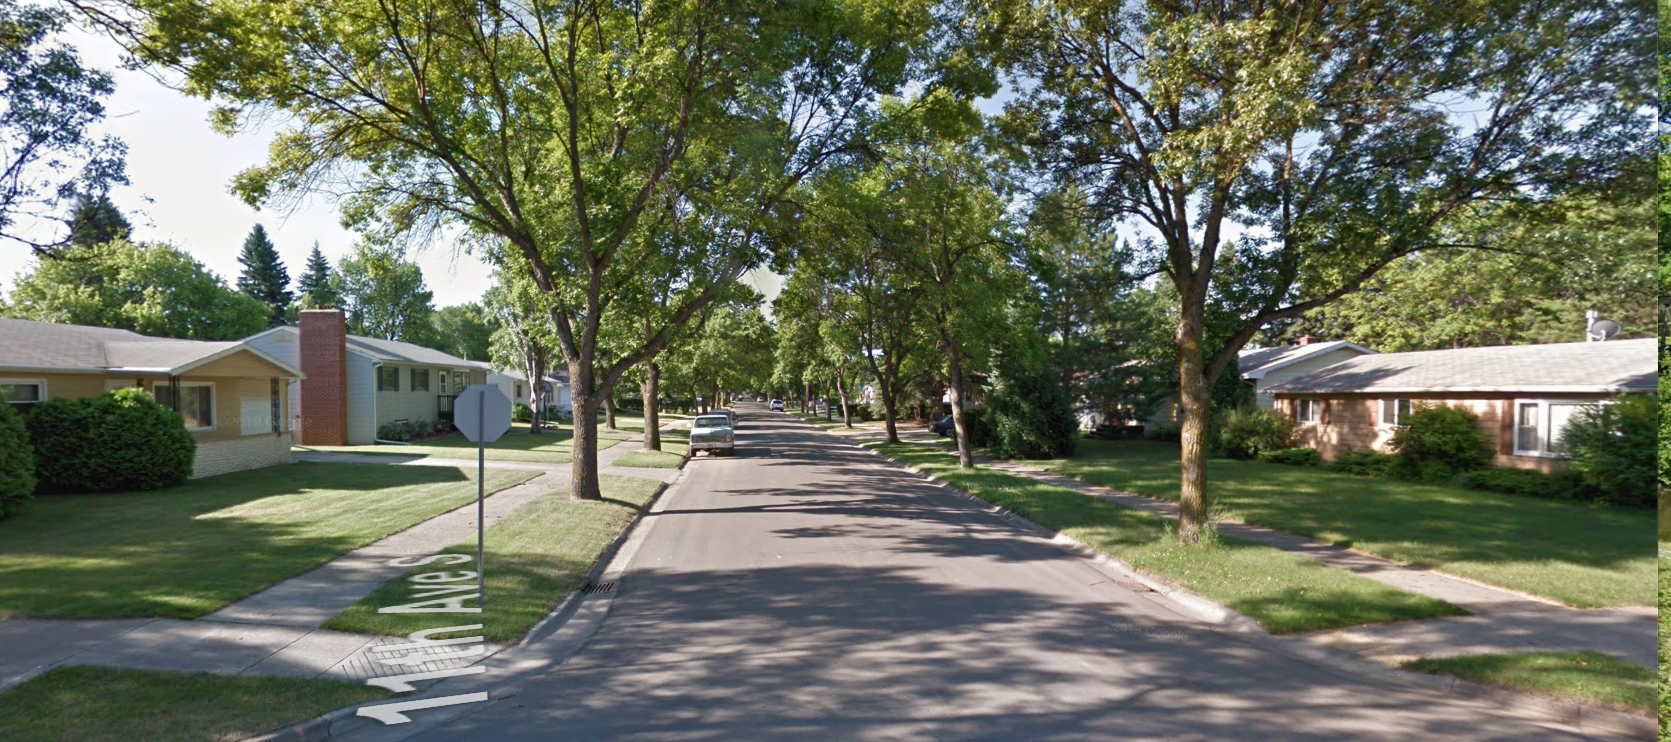 A classic American suburb in Grand Forks.